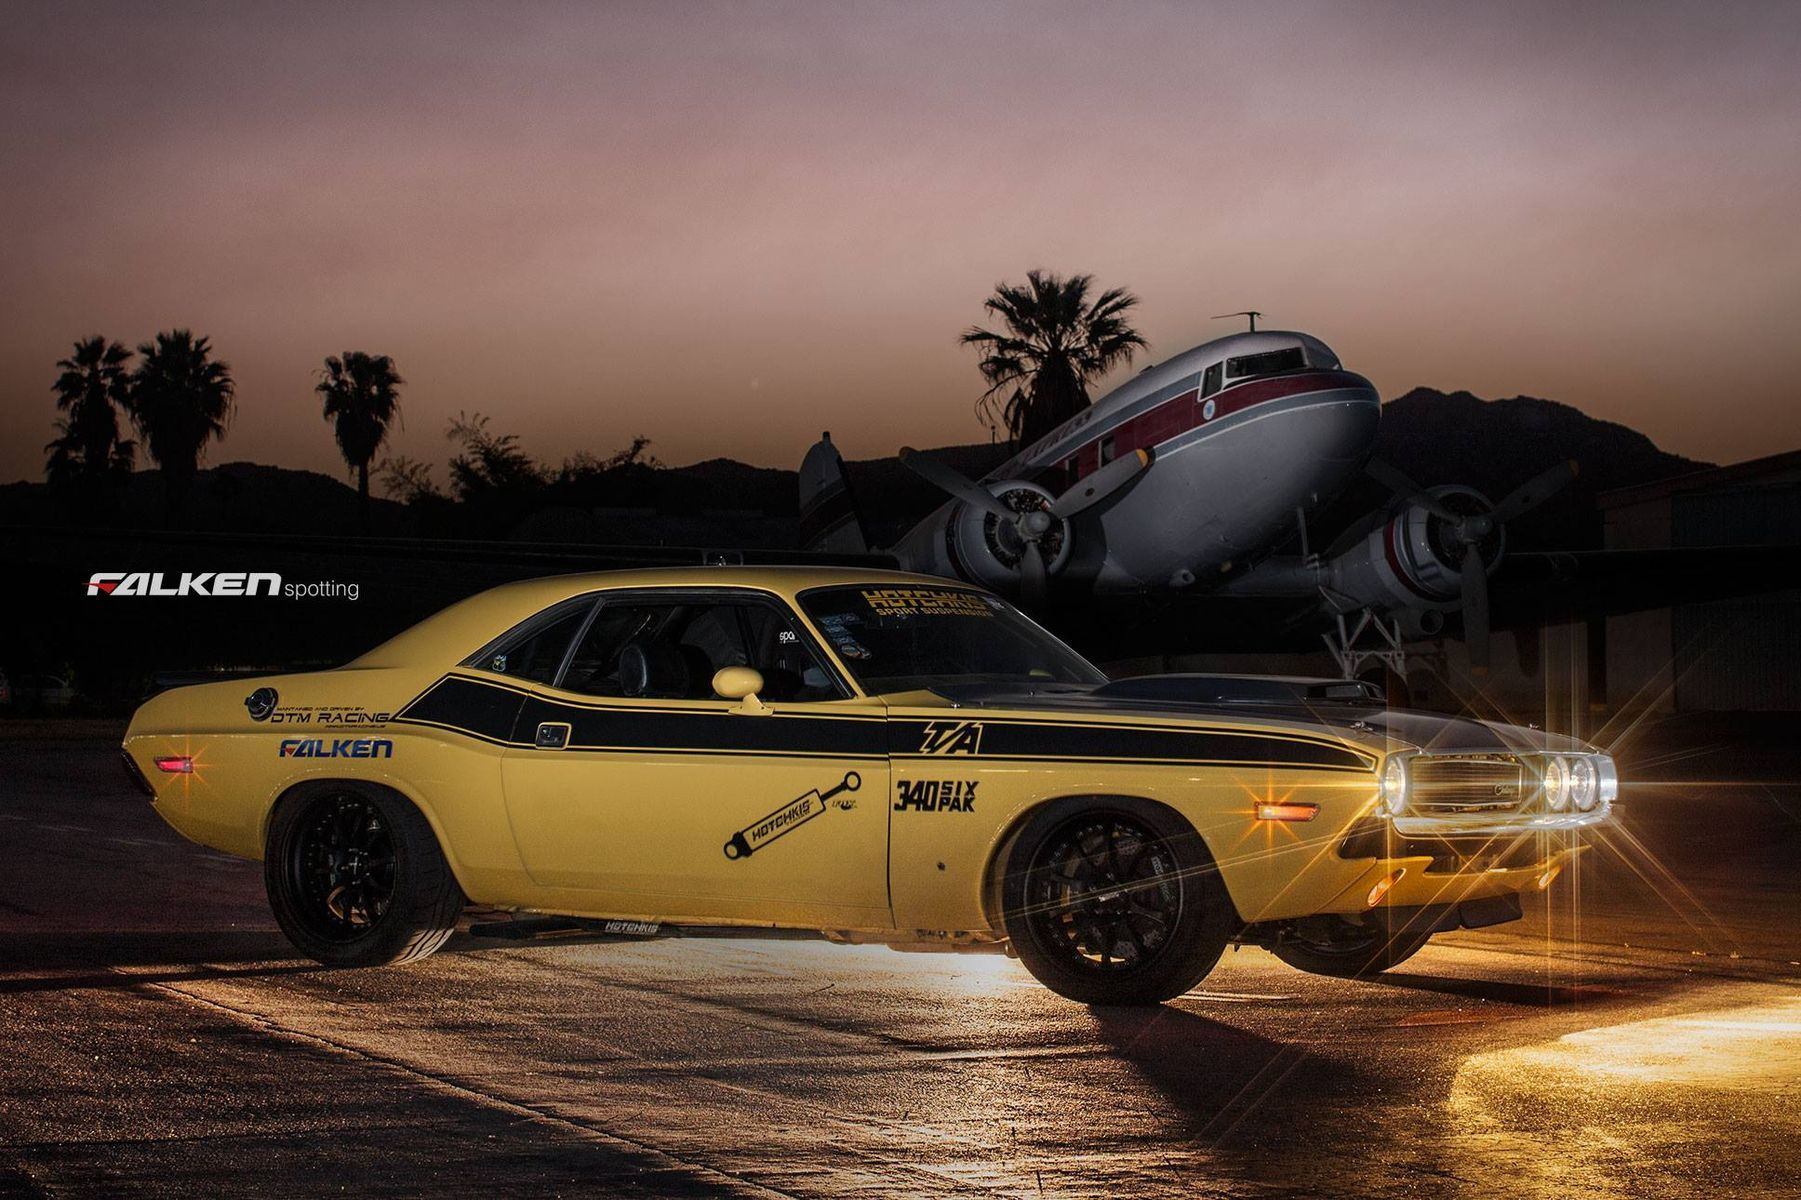 1970 Dodge Challenger | The Hotchkis Suspension